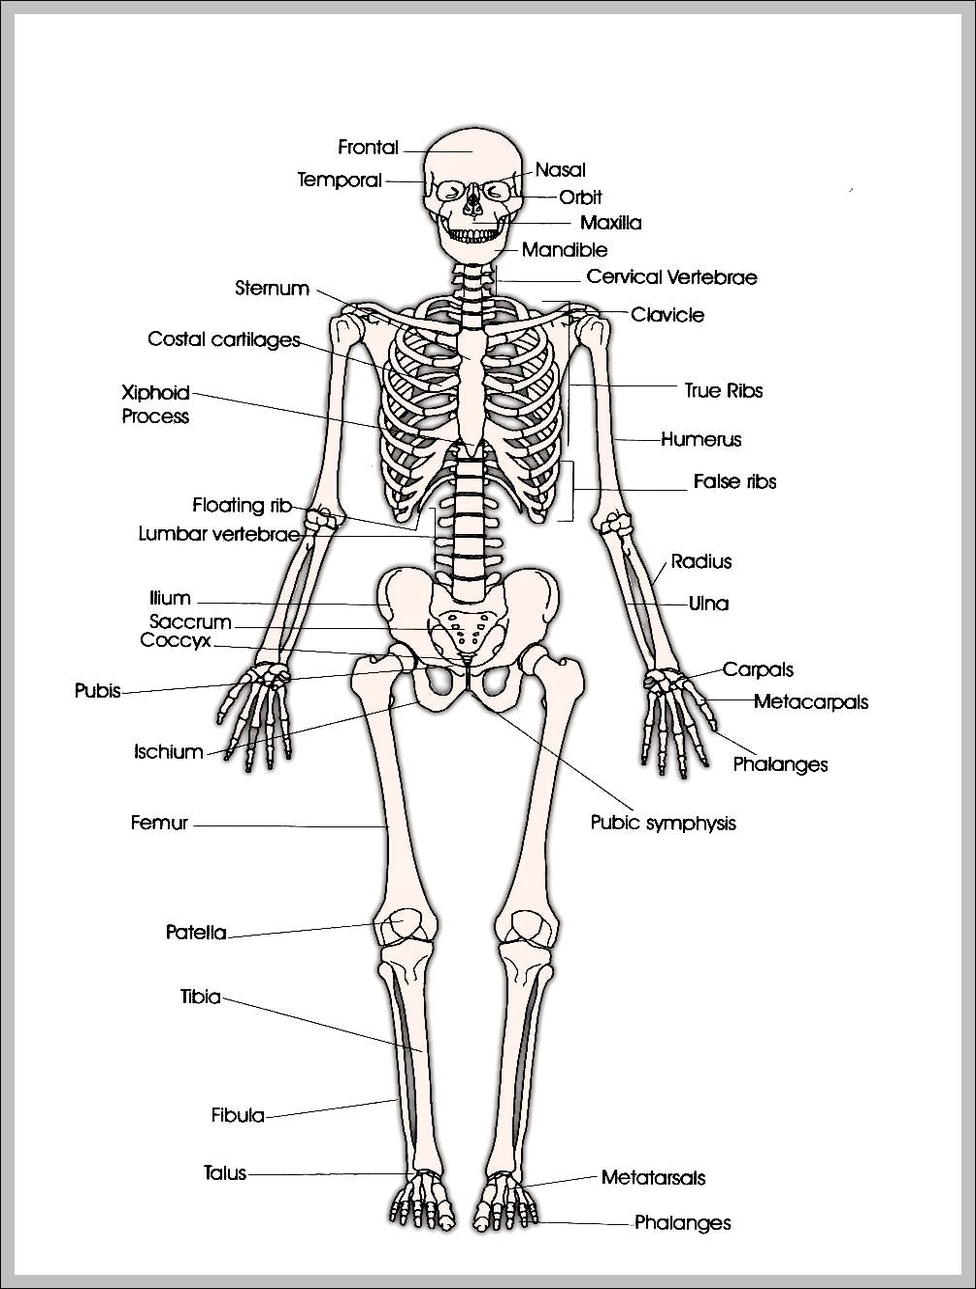 hight resolution of printable human skeleton diagram printable human skeleton chart human anatomy diagrams and charts explained this diagram depicts printable human